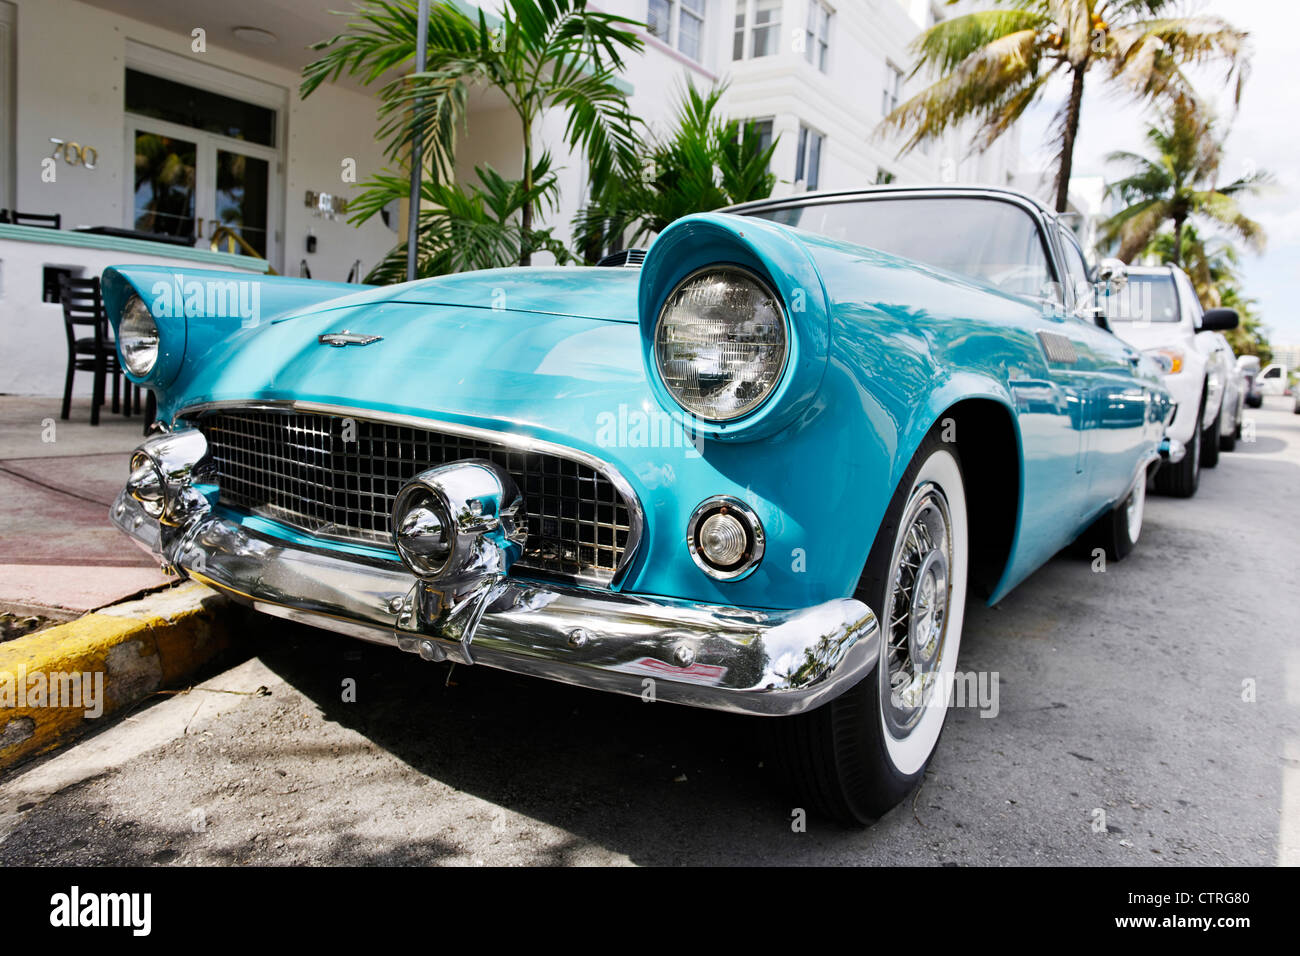 Ford Thunderbird, built in 1957, fifties, American classic cars, OCEAN DRIVE, Miami South Beach Art Deco district, - Stock Image